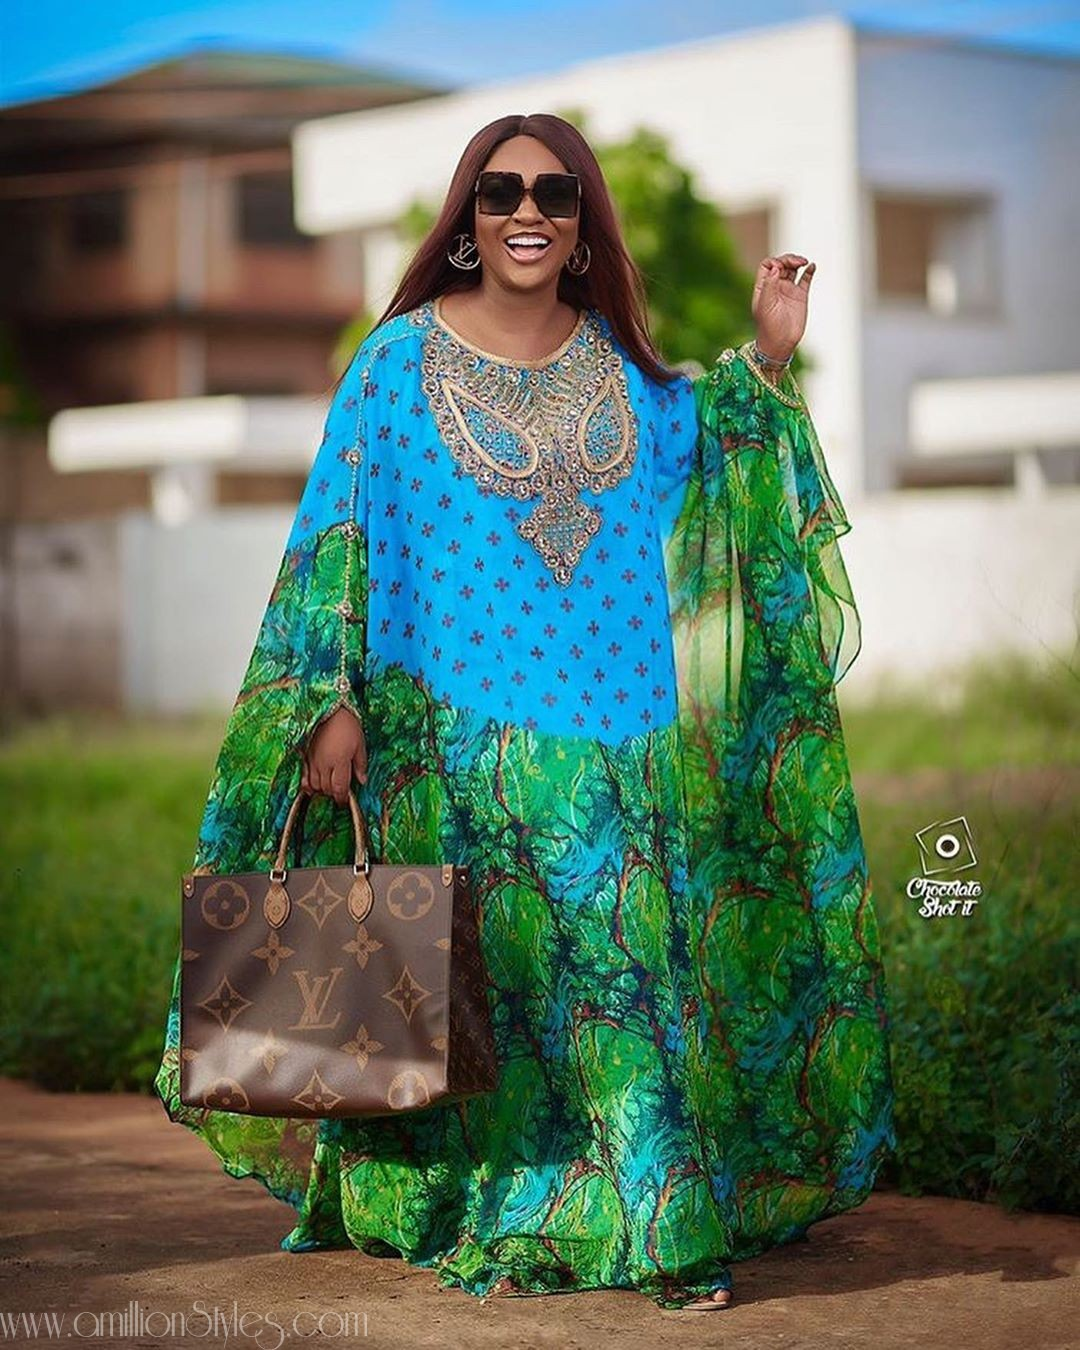 Jackie Appiah Gives Off Rich Aunty Vibes In Green Embellished Gown